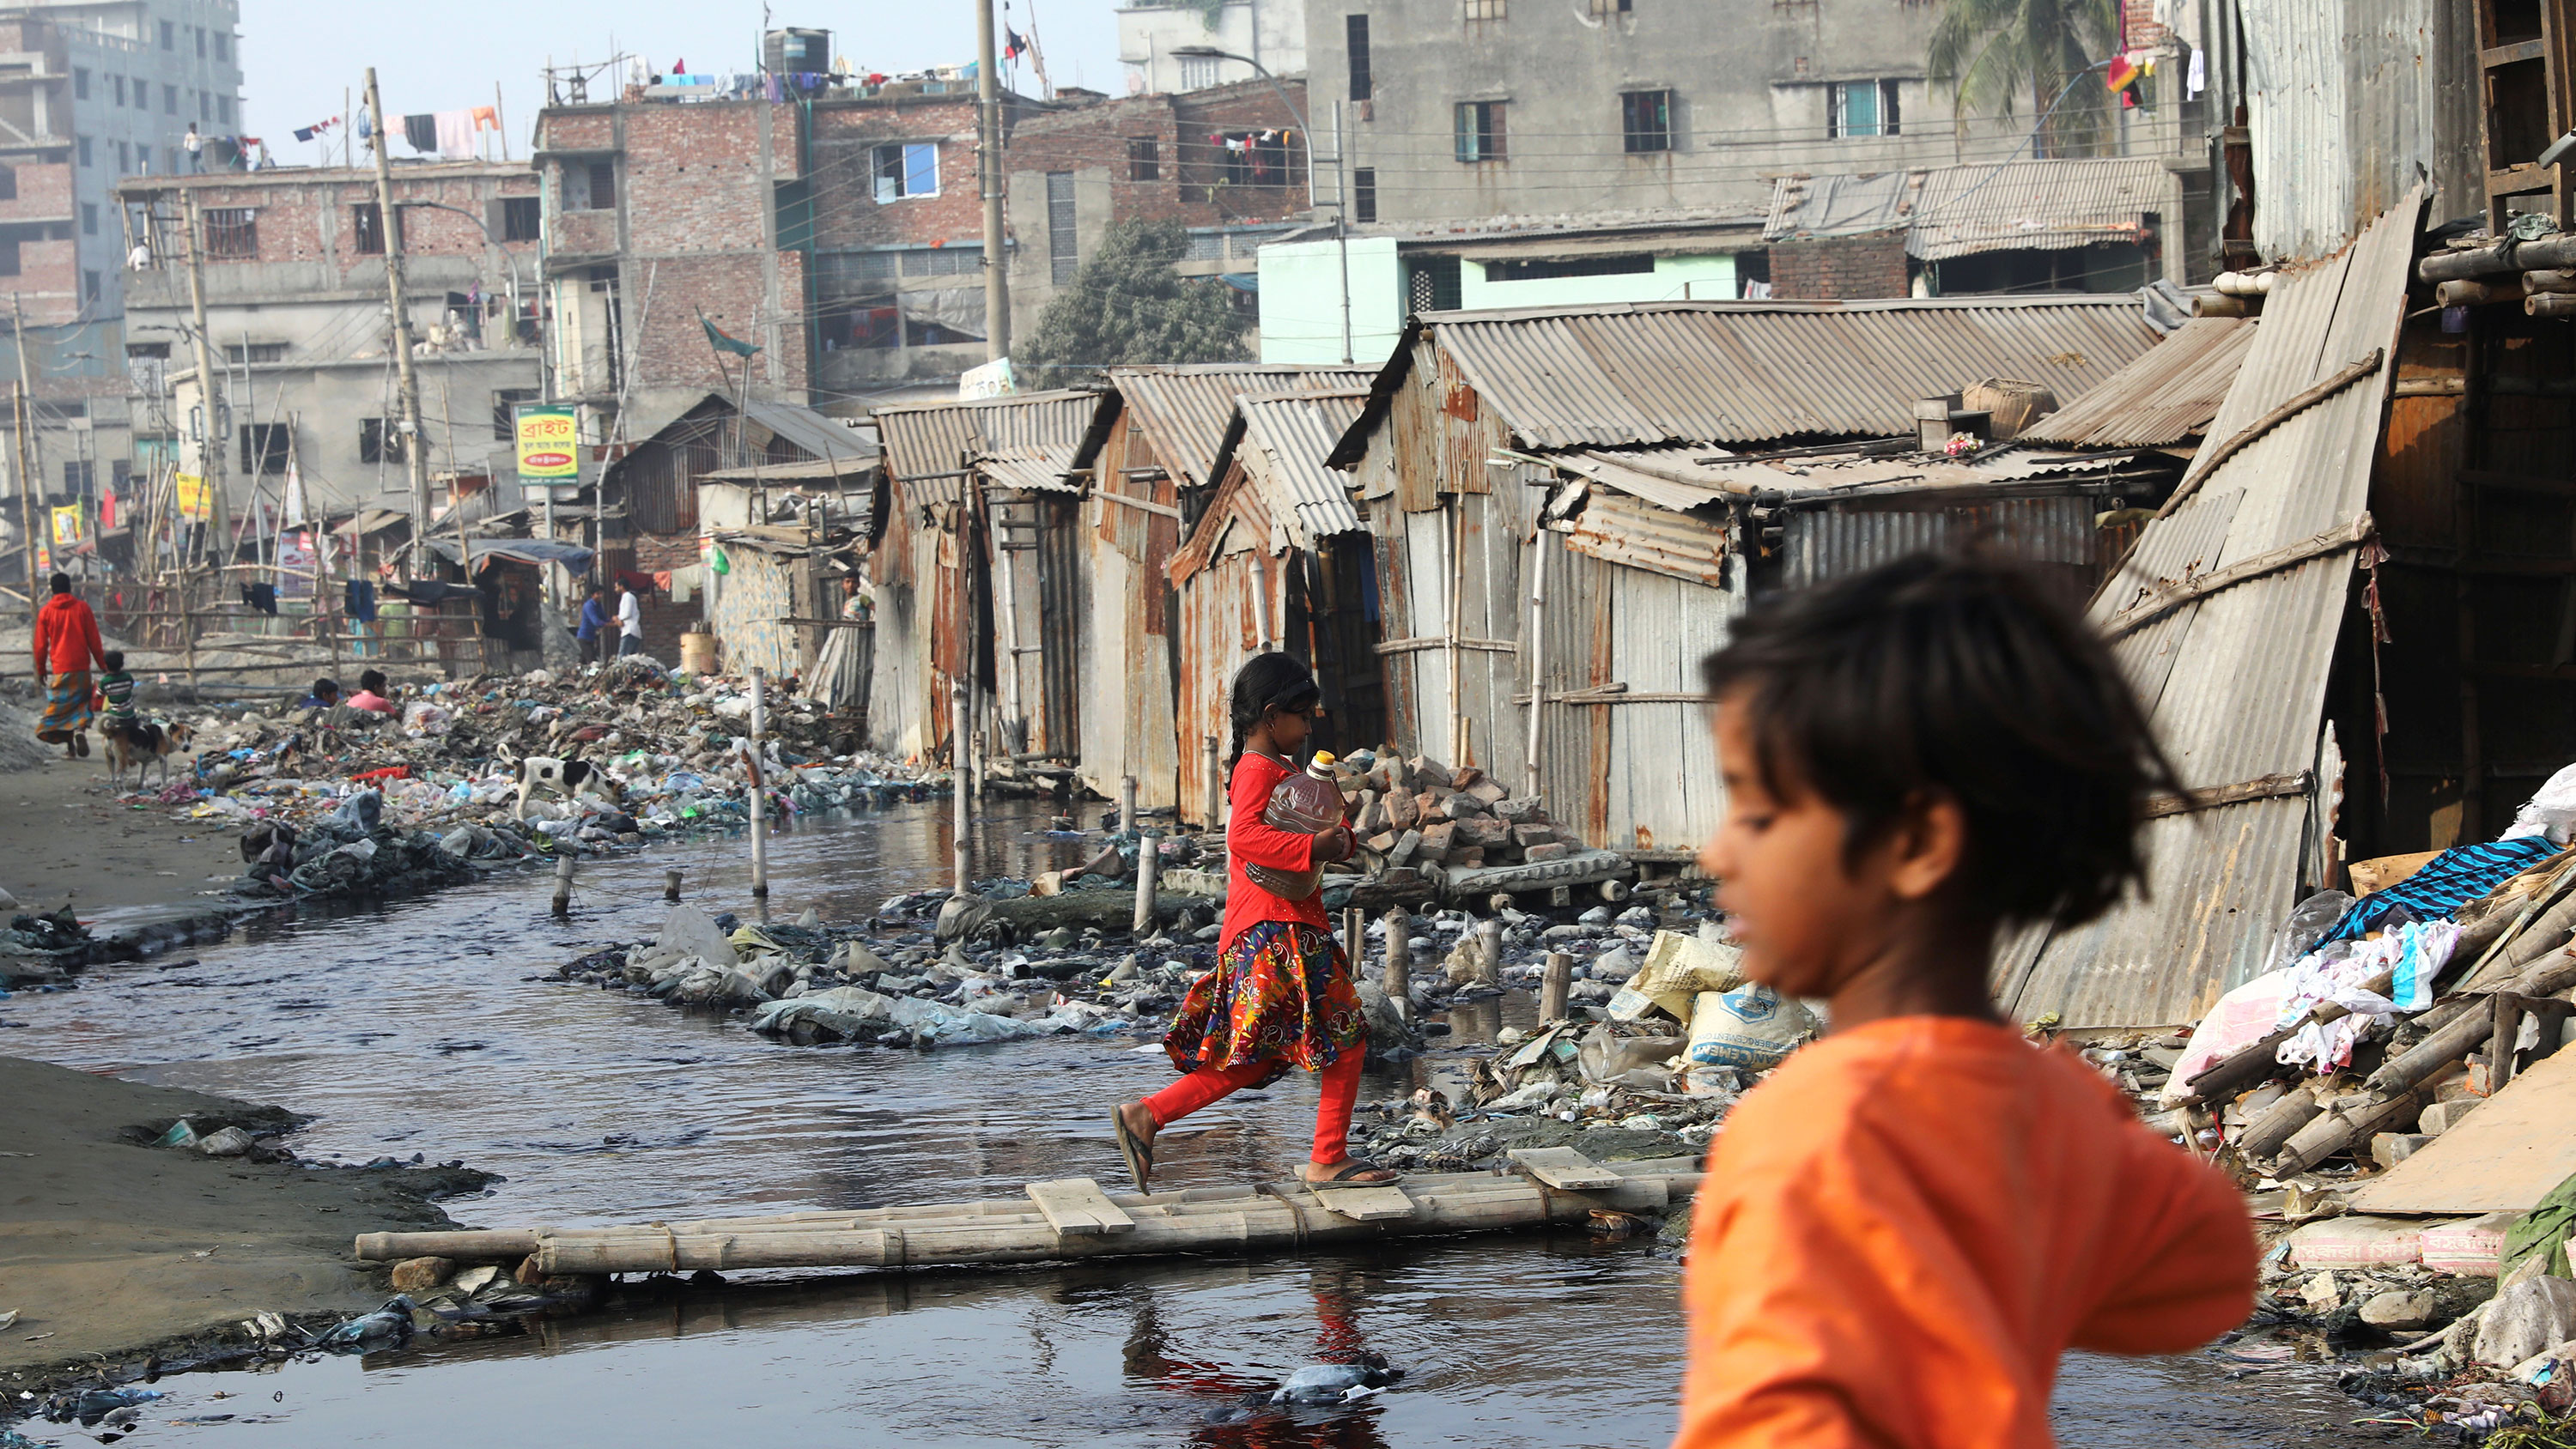 The photo shows a muddy, flooded area in front of tin shacks with a few children walking about.